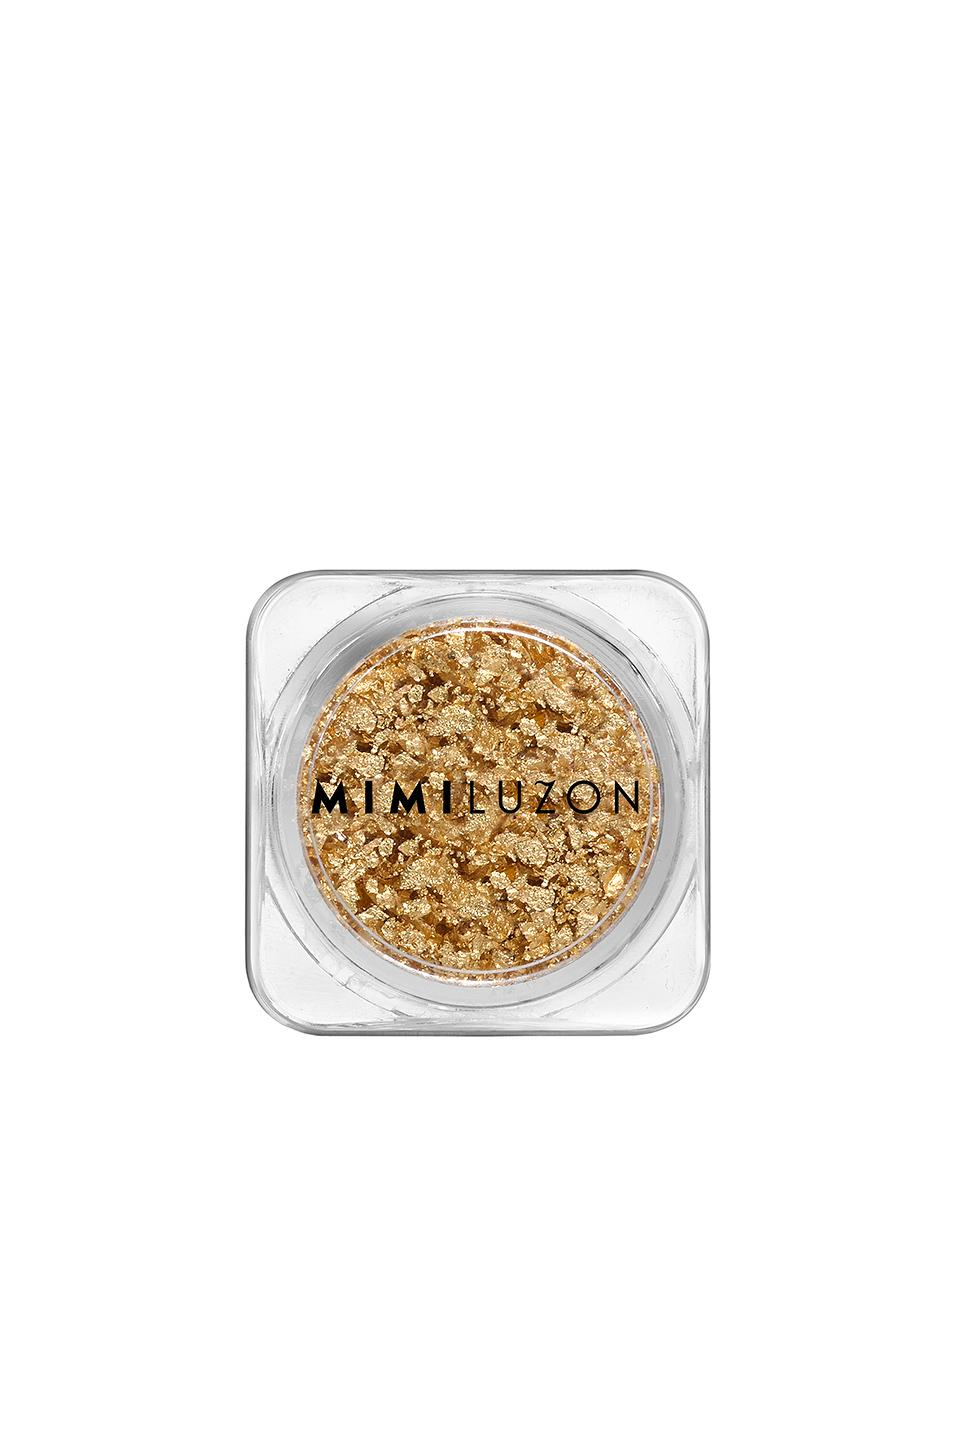 Mimi Luzon 24K Pure Gold Dust In Beauty: Na. In N,A